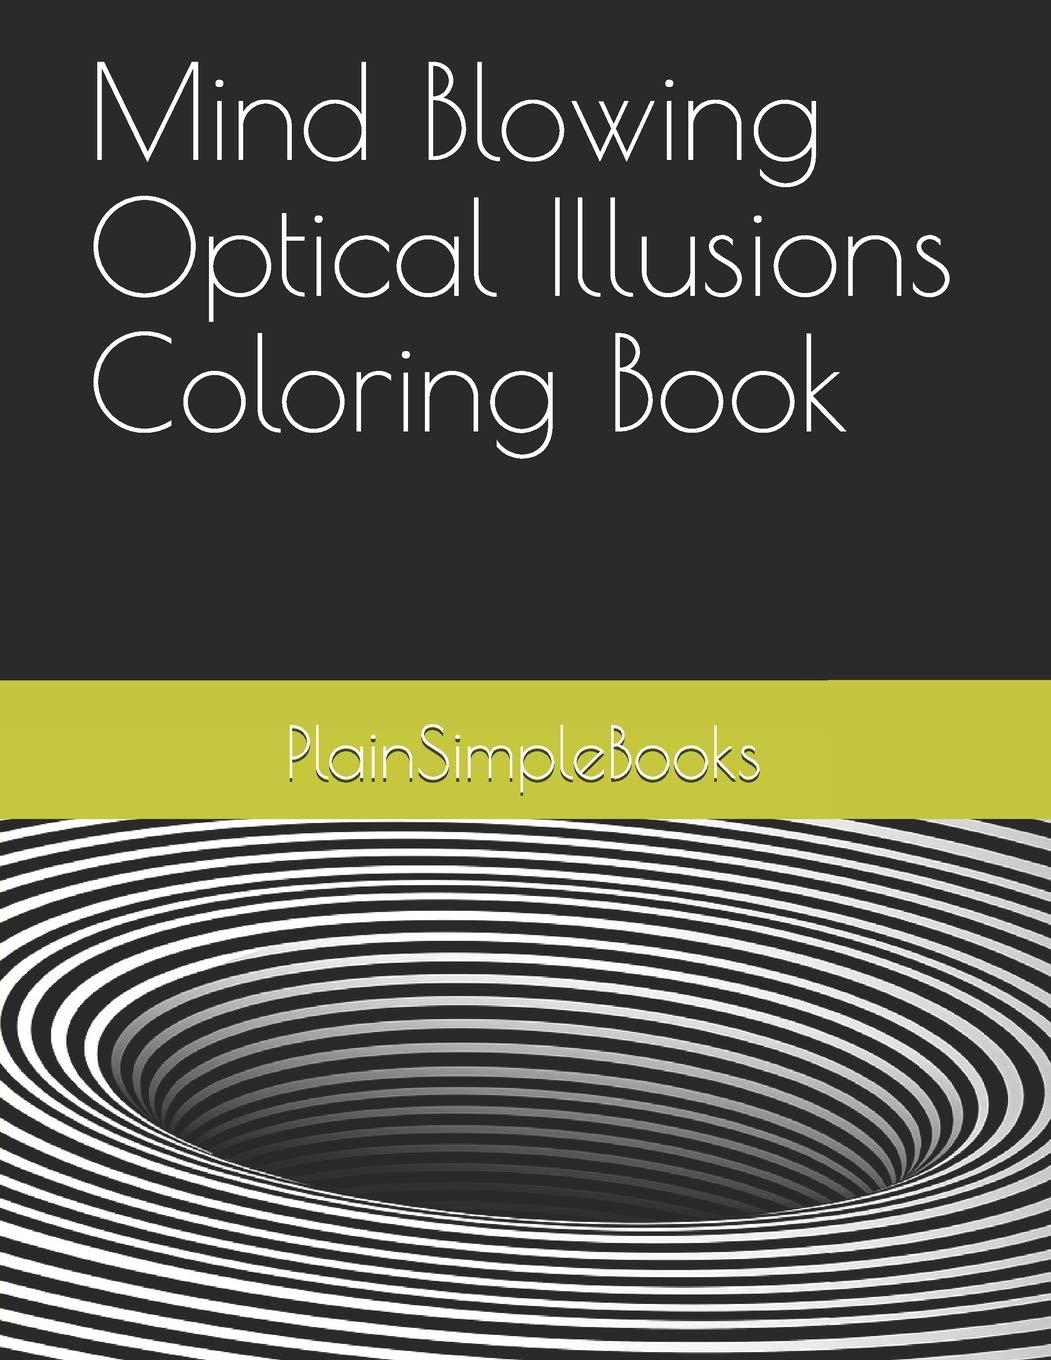 Amazon Com Mind Blowing Optical Illusions Coloring Book 9781650090740 Plainsimplebooks Books